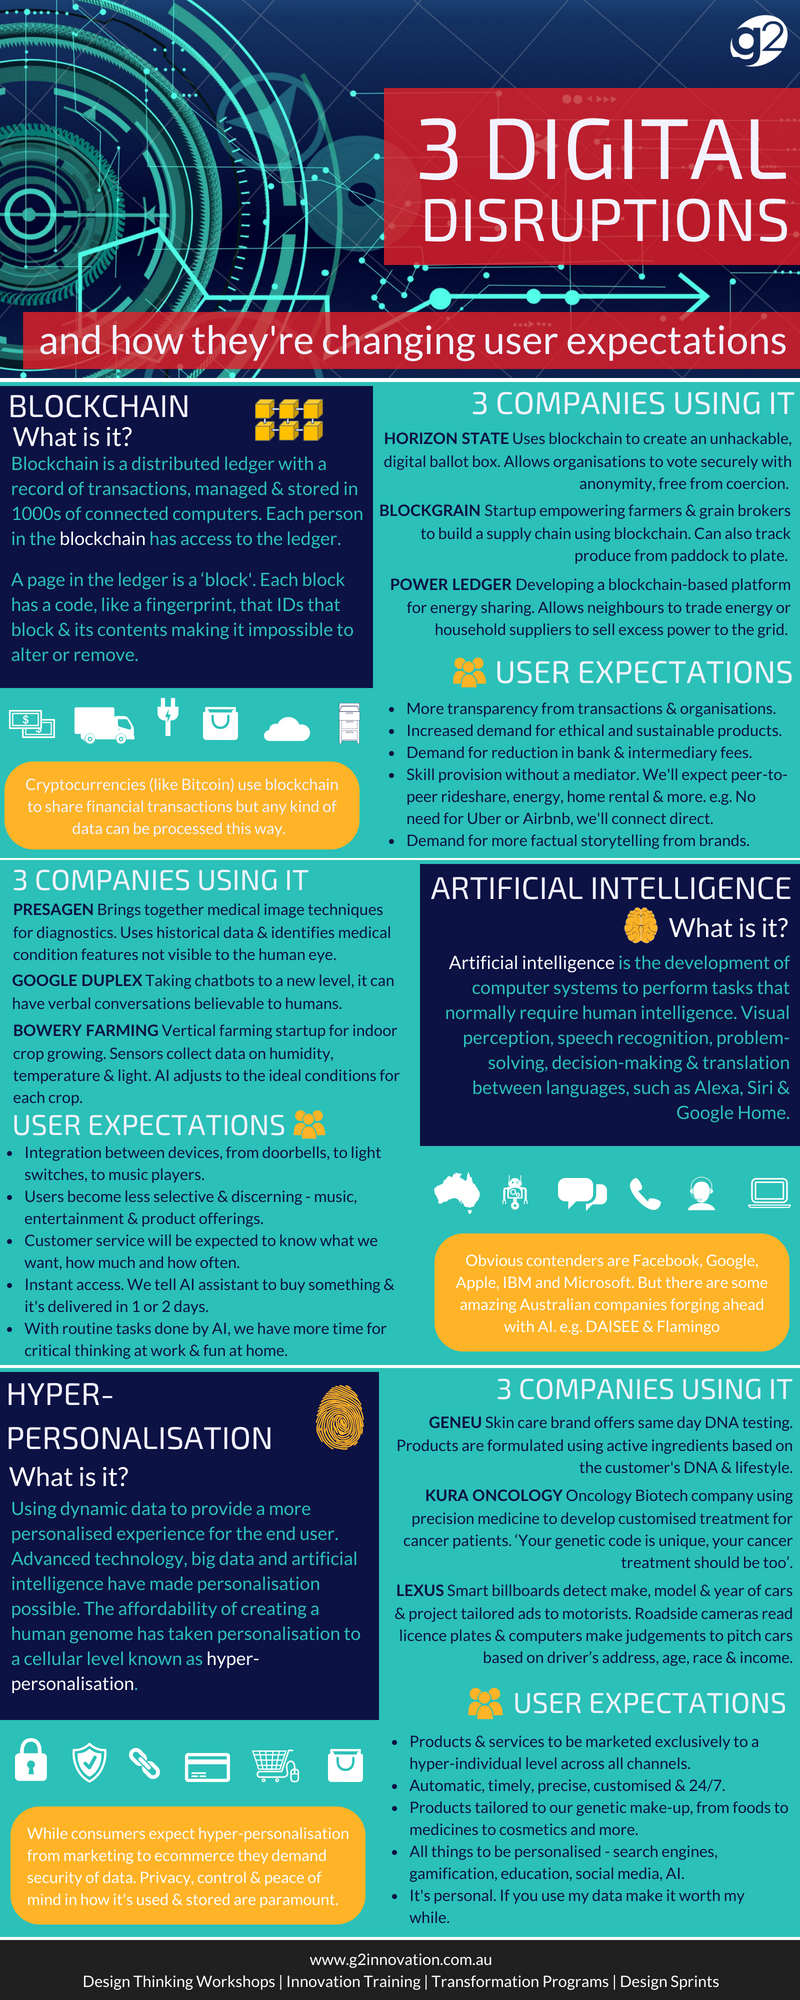 DIGITAL DISRUPTION INFOGRAPHIC_G2 INNOVATION.png